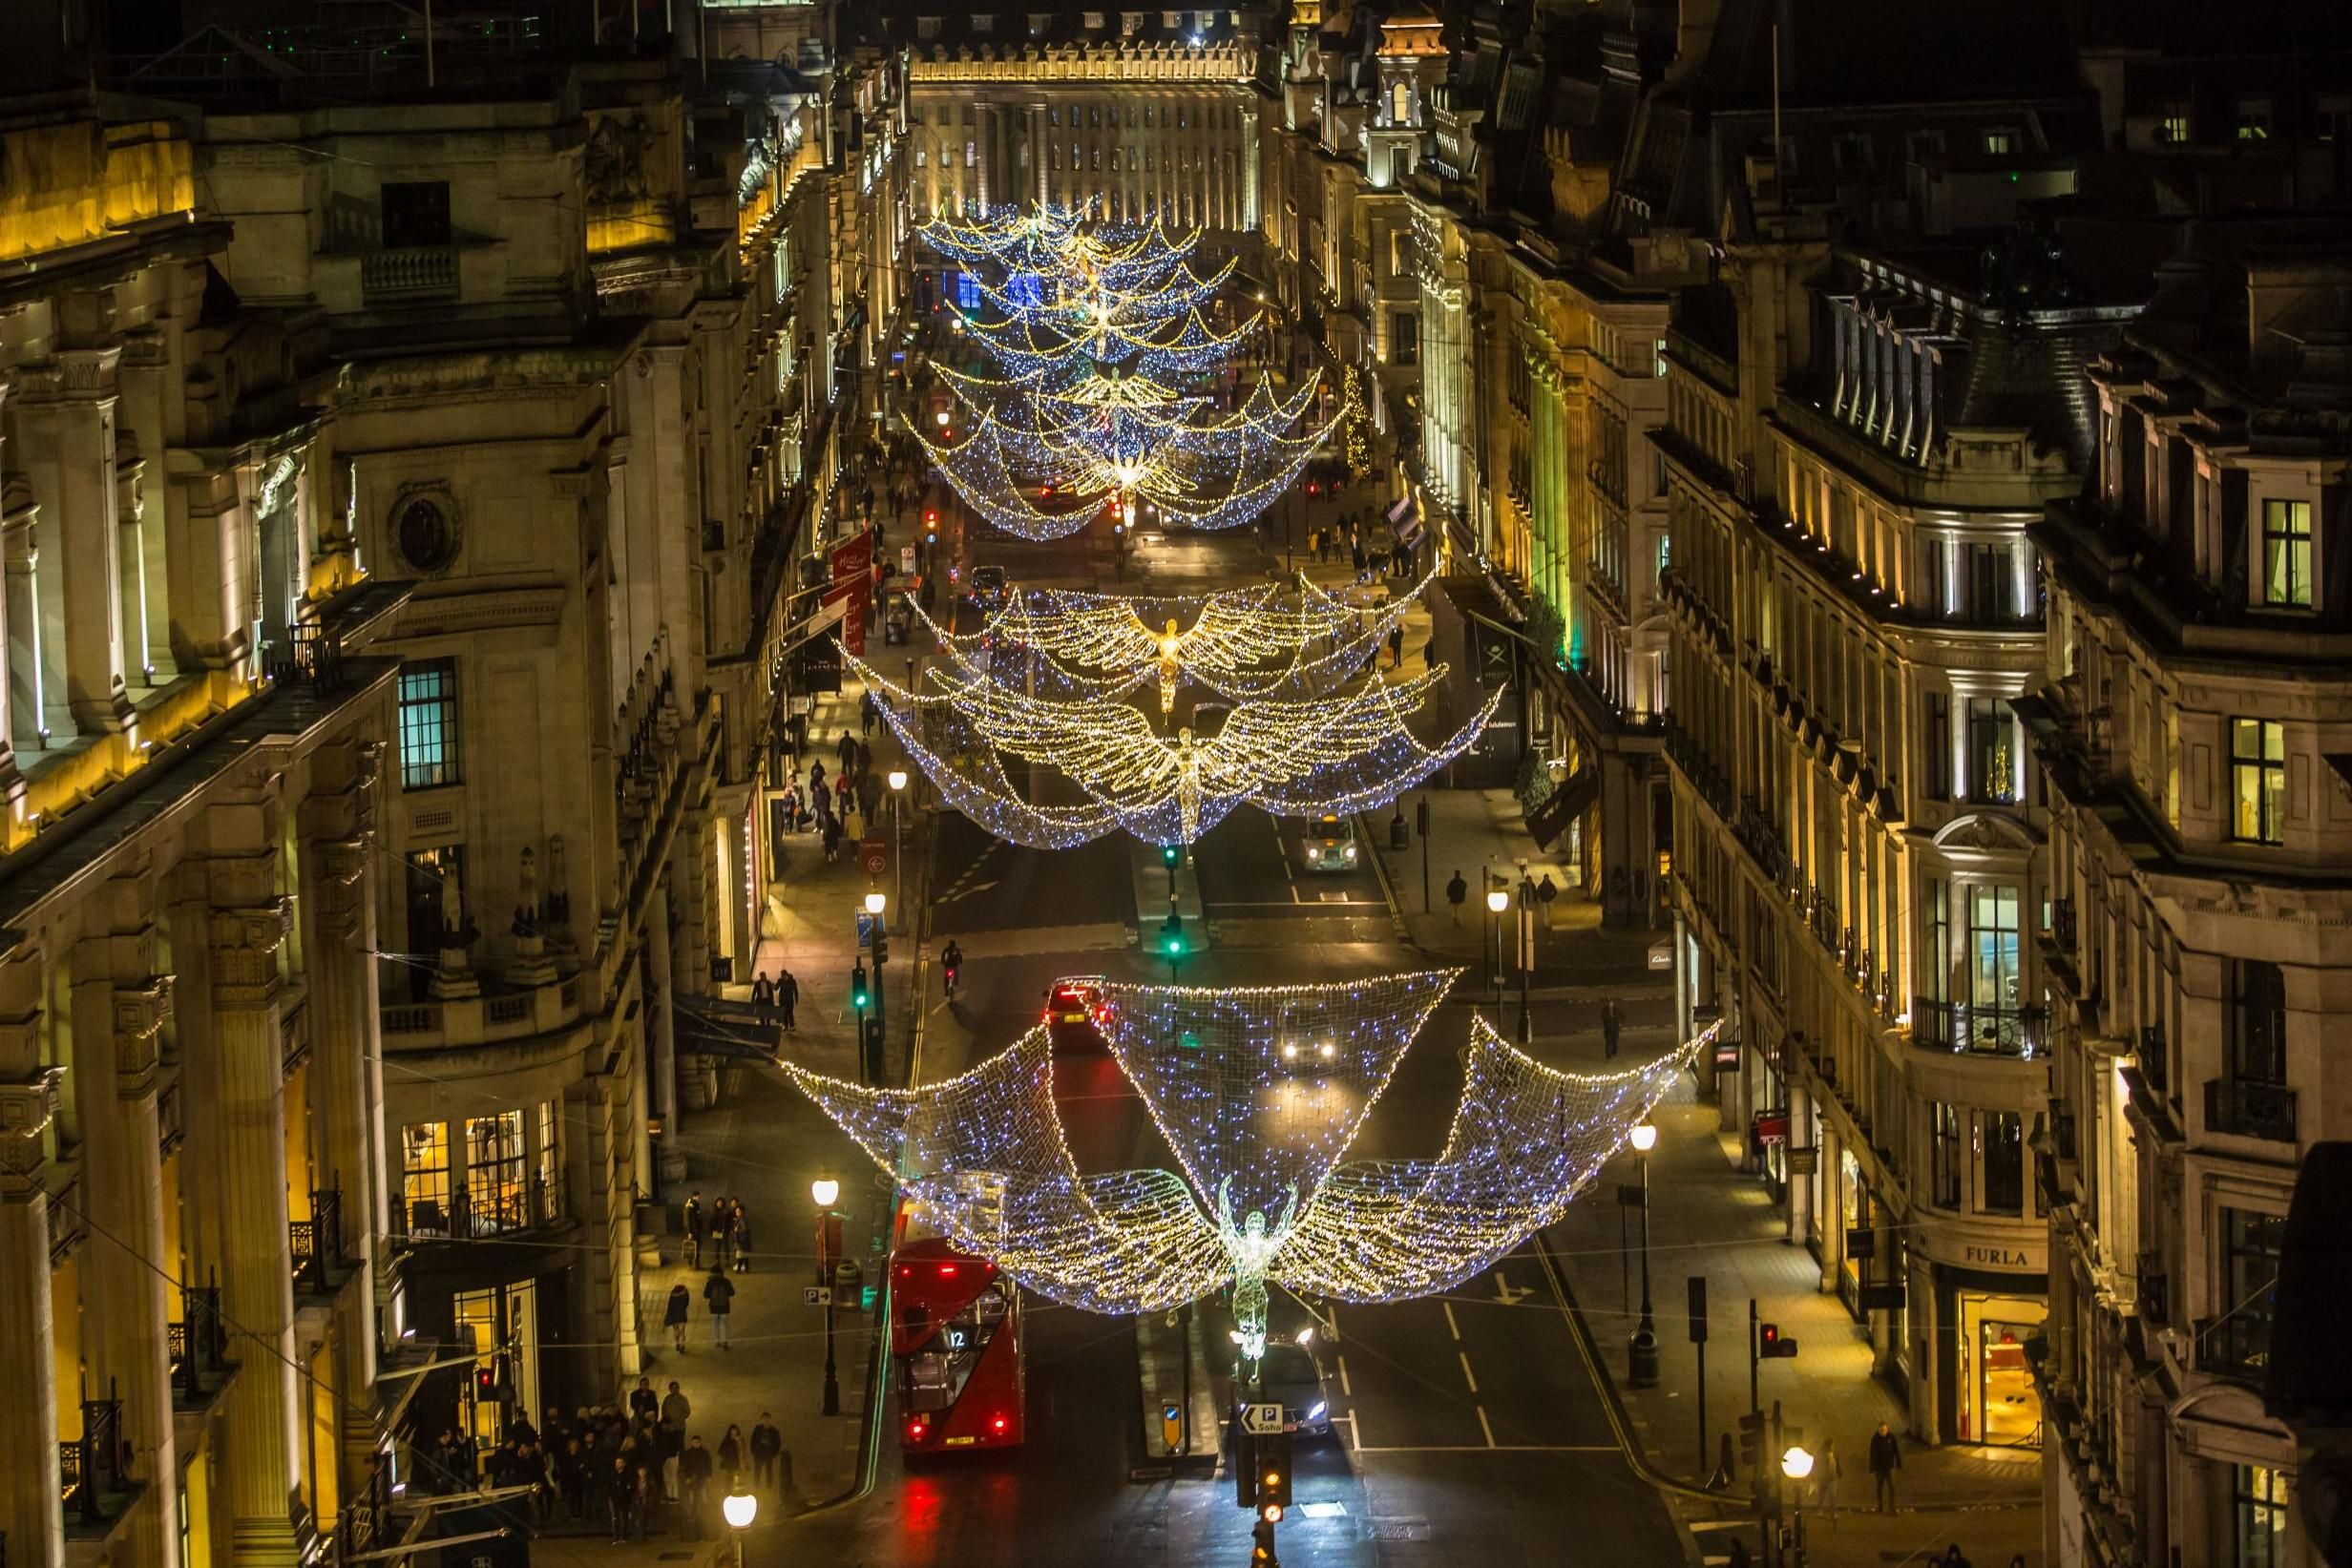 Oxford Street Weihnachtsbeleuchtung.Oxford Street Xmas Lights 2019 Xmas Ideas 2019 London Christmas